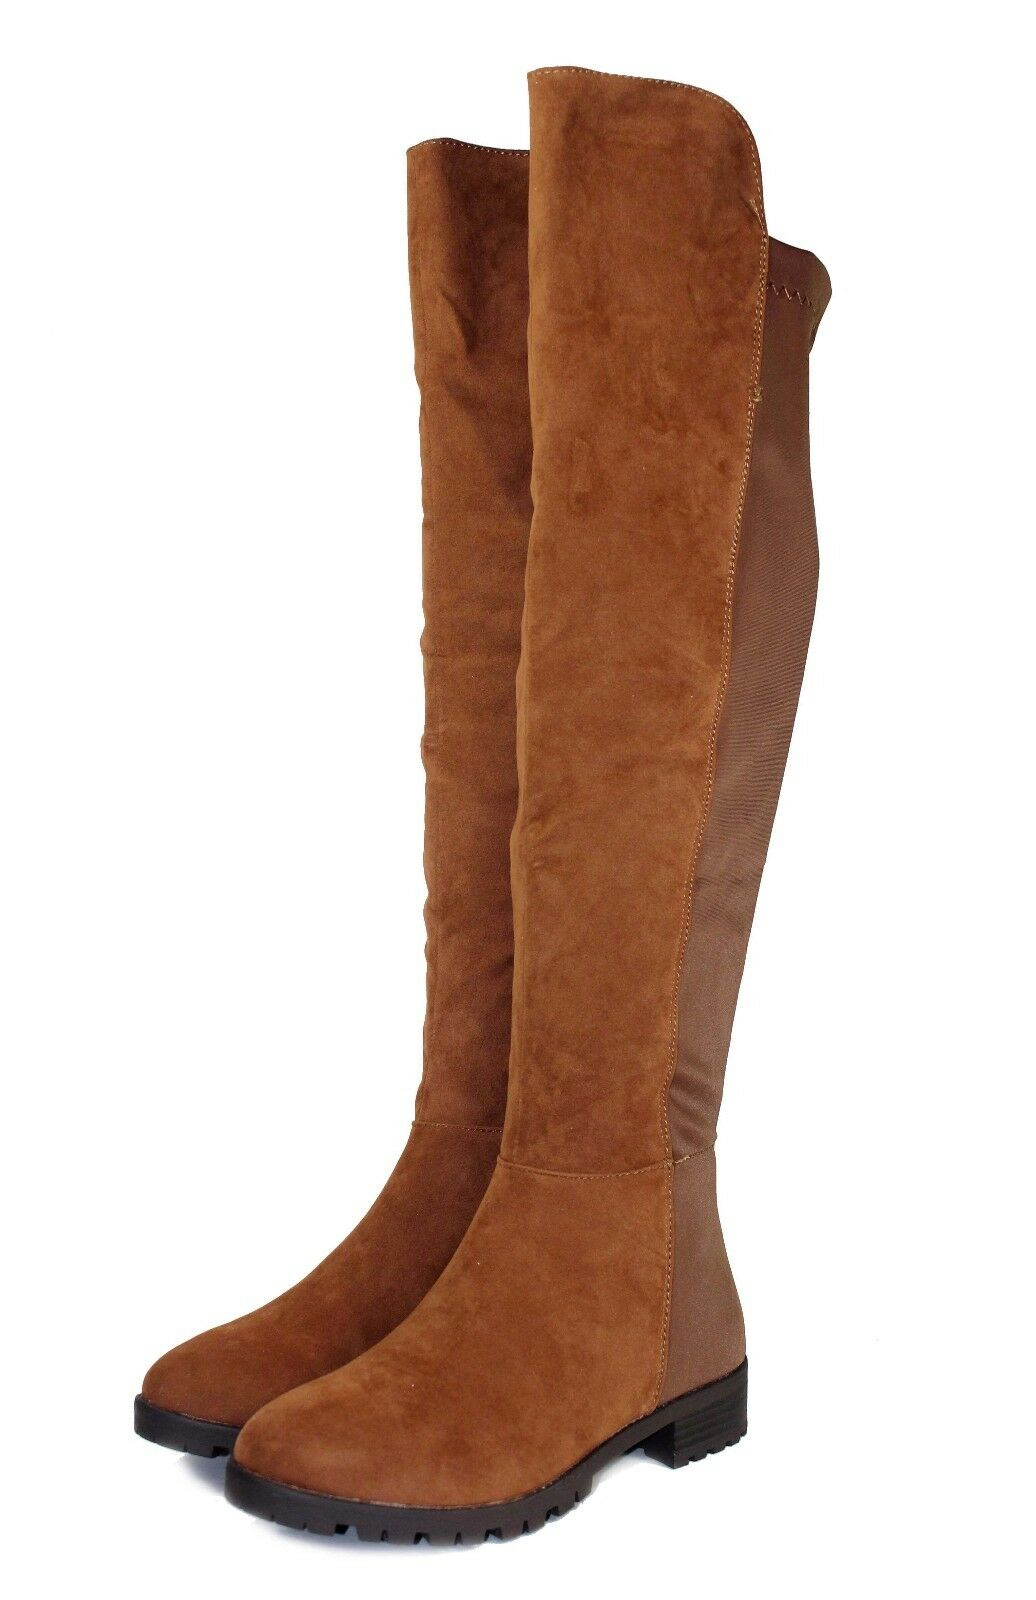 Fifty-50 New Fashion Over Knee Zipper Casual Women's Low Heel Suede Boots Tan